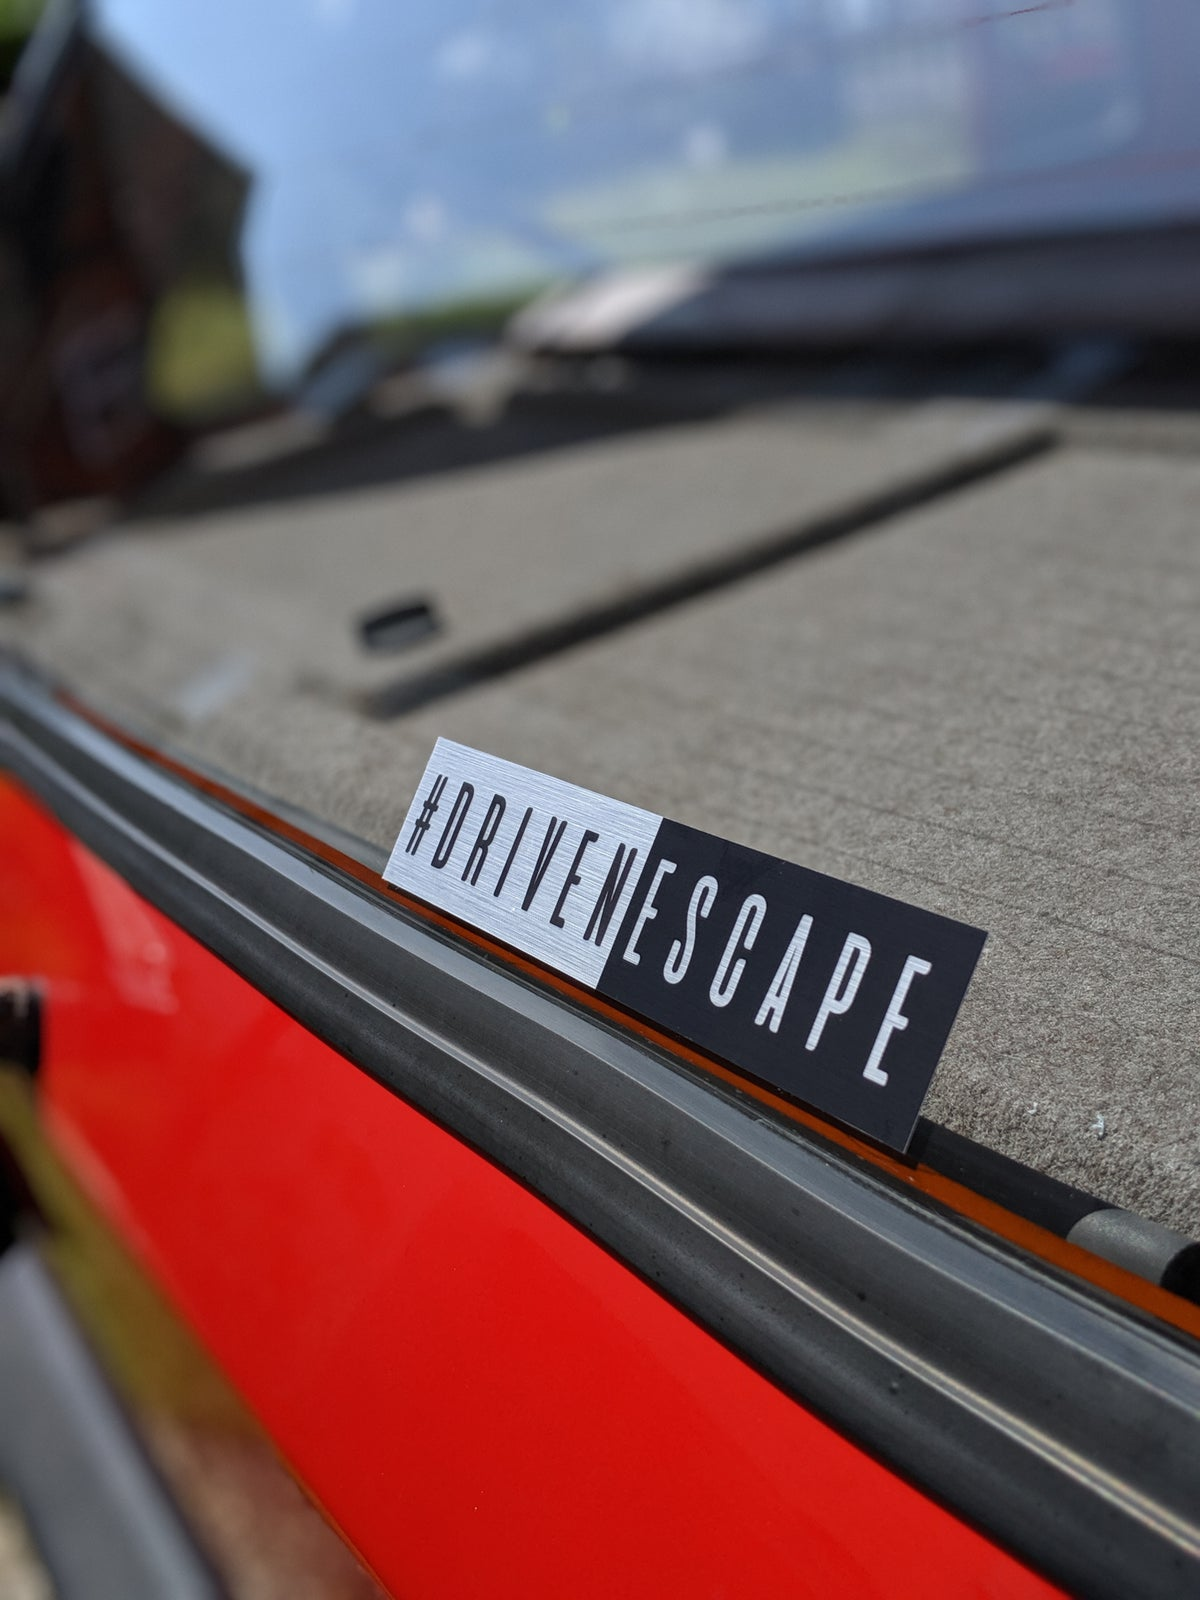 Image of Brushed Aluminium #DrivenEscape Slap Sticker